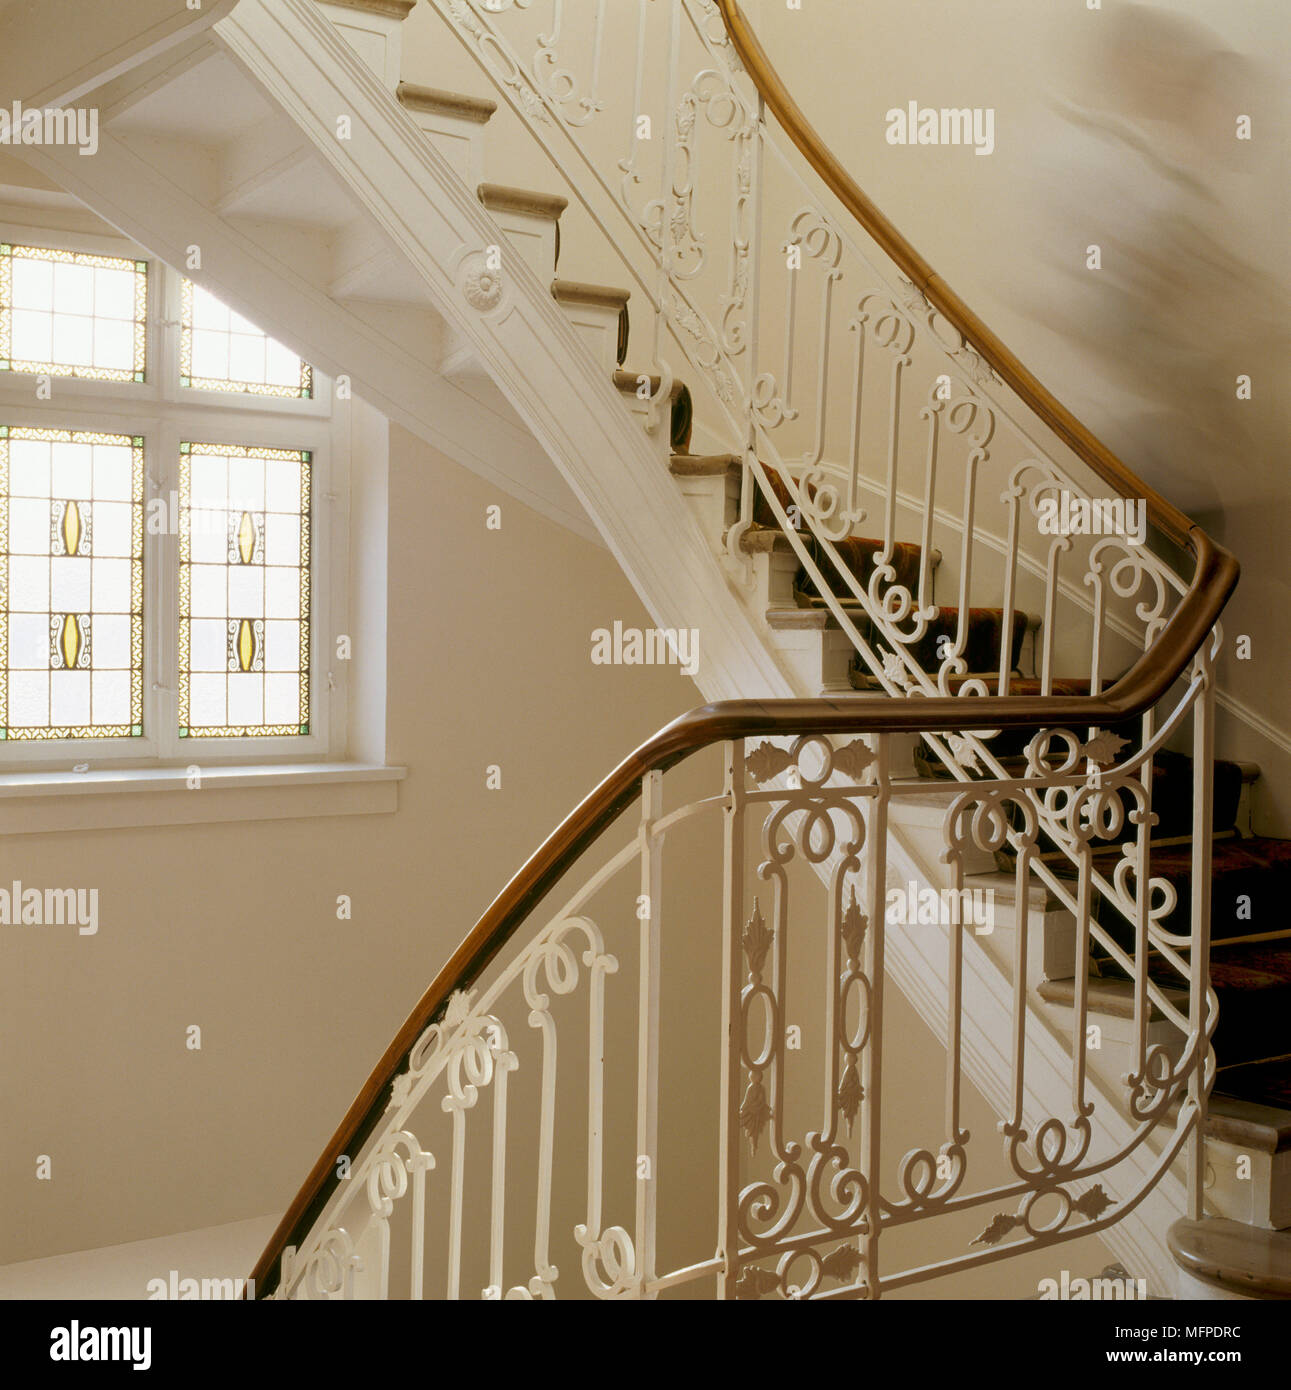 A Detail Of A Traditional Curving Staircase, Decorative Wrought Iron  Spindles, Stained Glass Window, Blurred Figure On Stairs